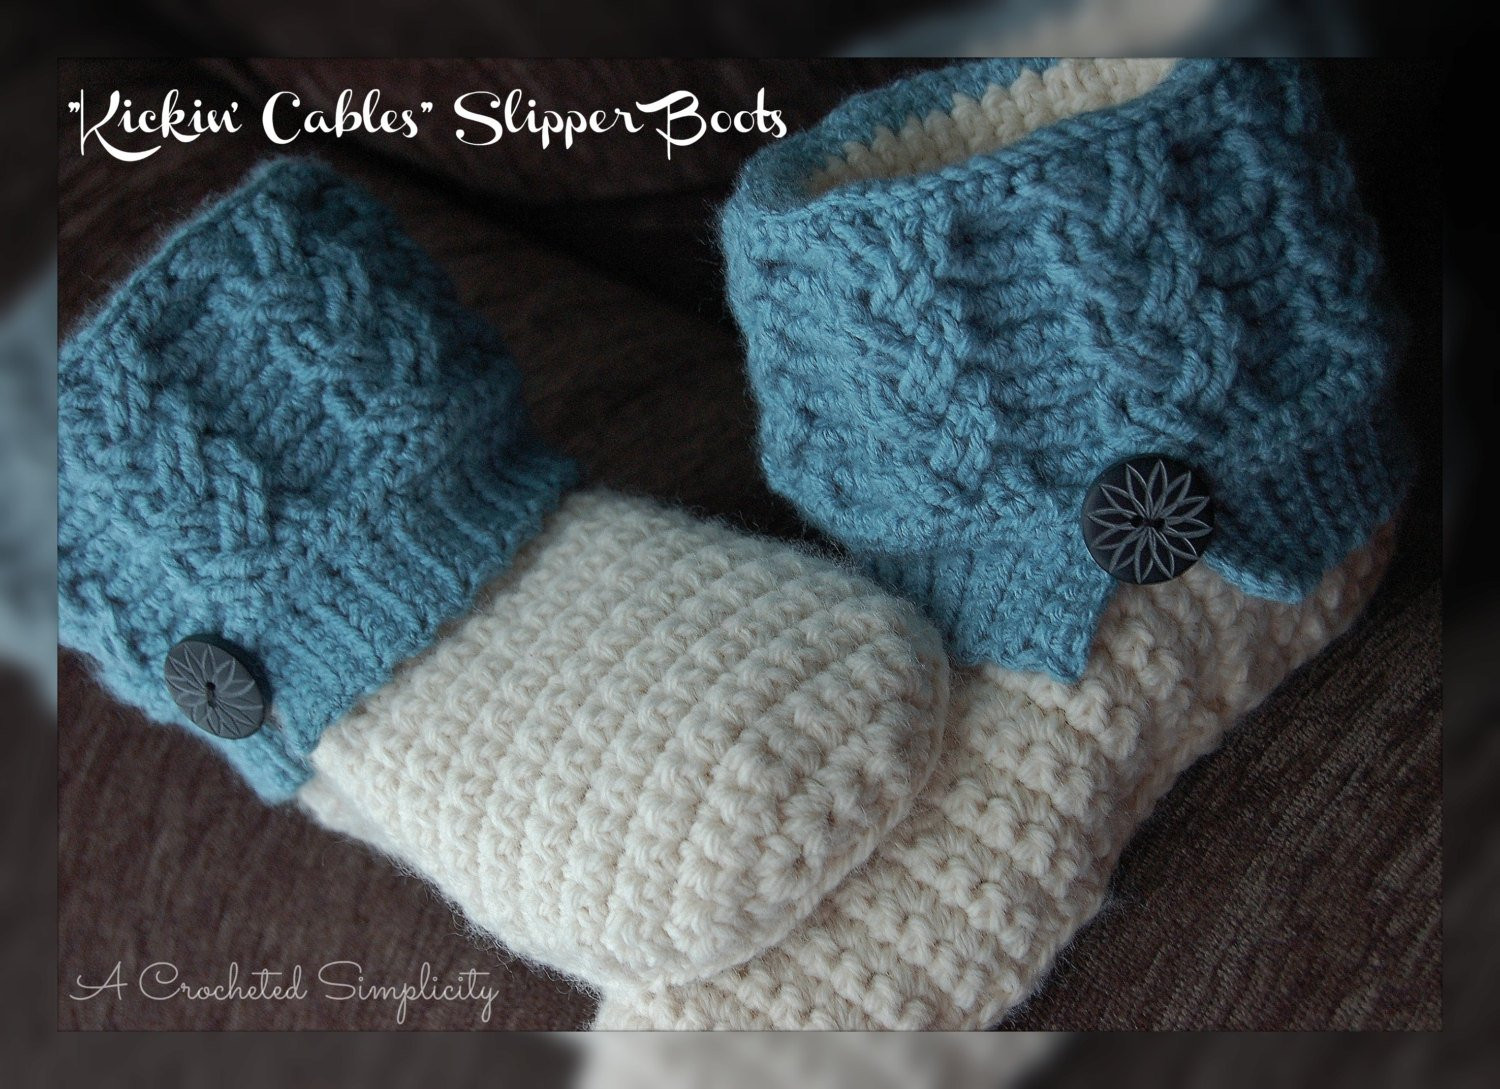 Crochet Cables Elegant Crochet Pattern Kickin Cables Slipper Boots Of Amazing 48 Pics Crochet Cables